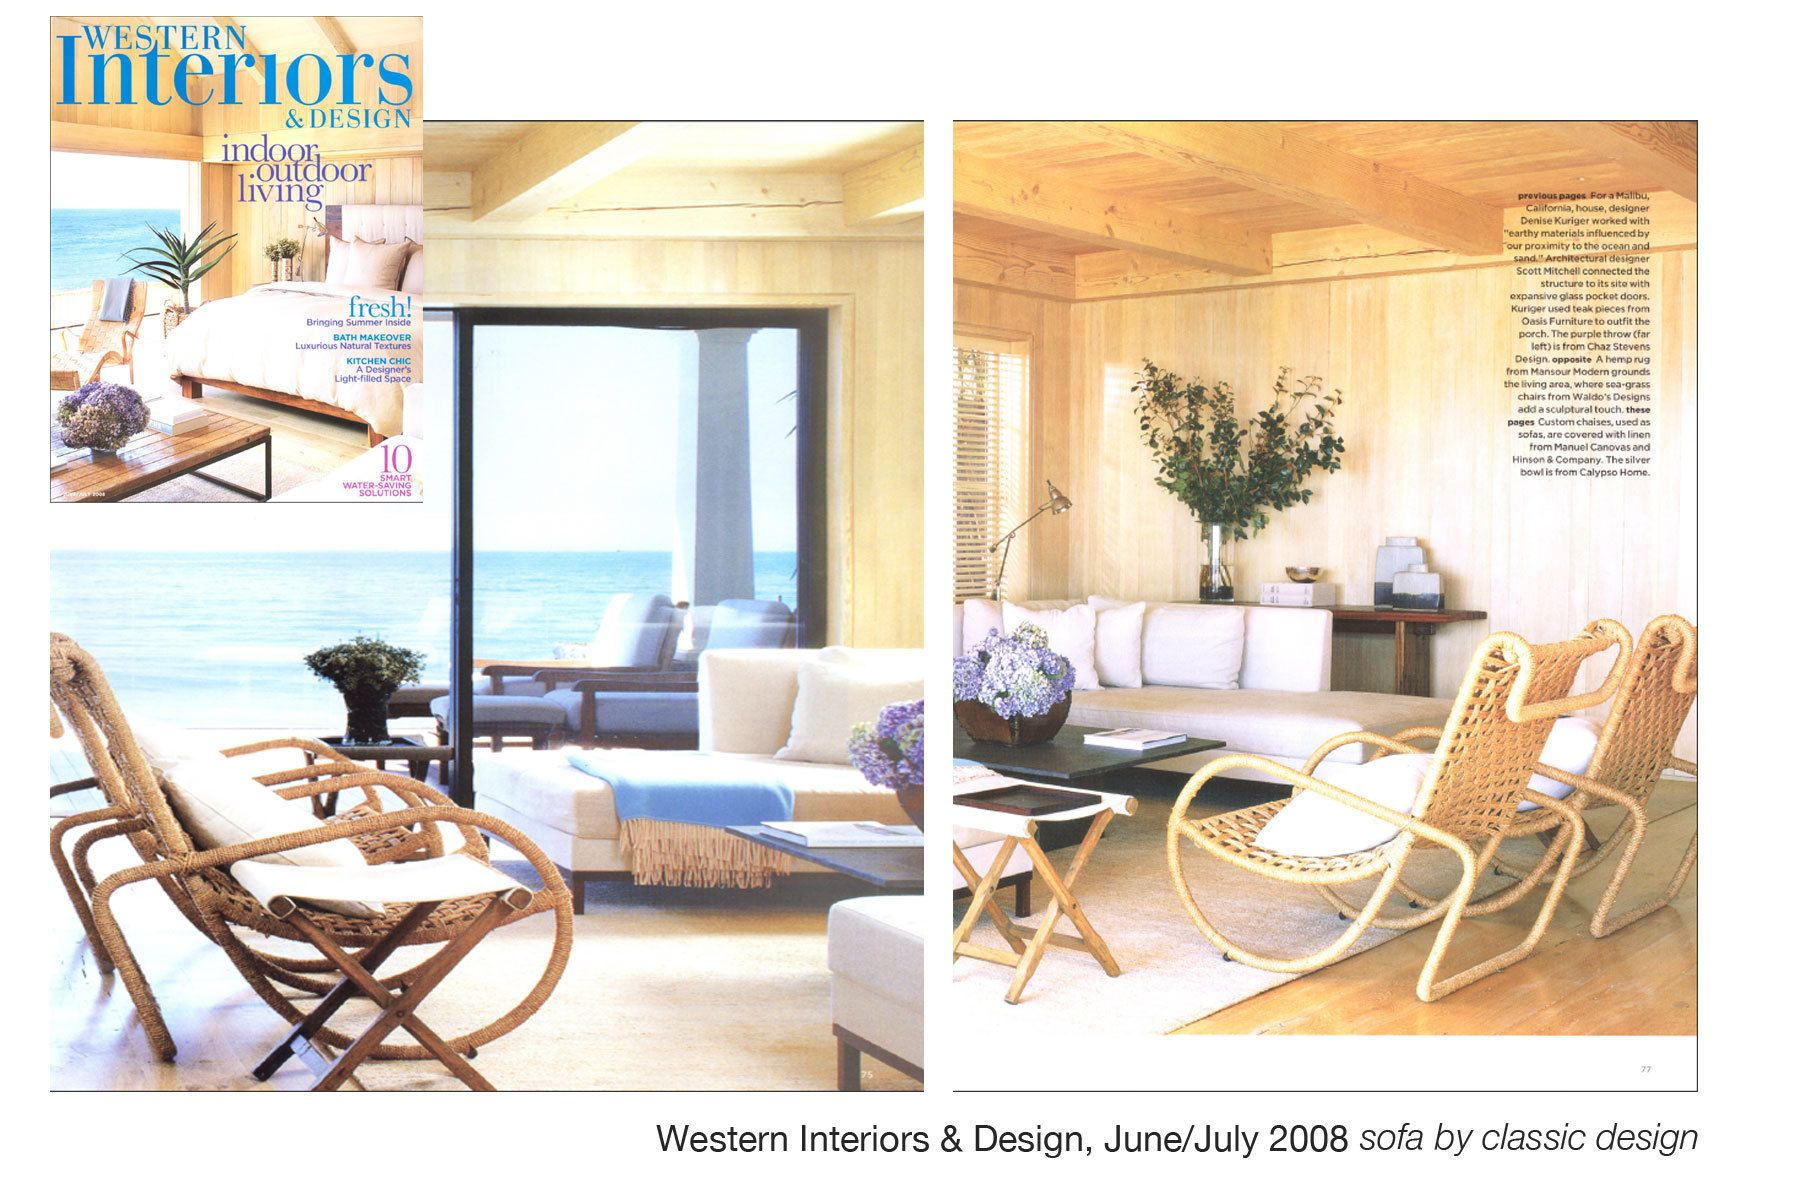 Western Interiors & Design Magazine, June/July 2008